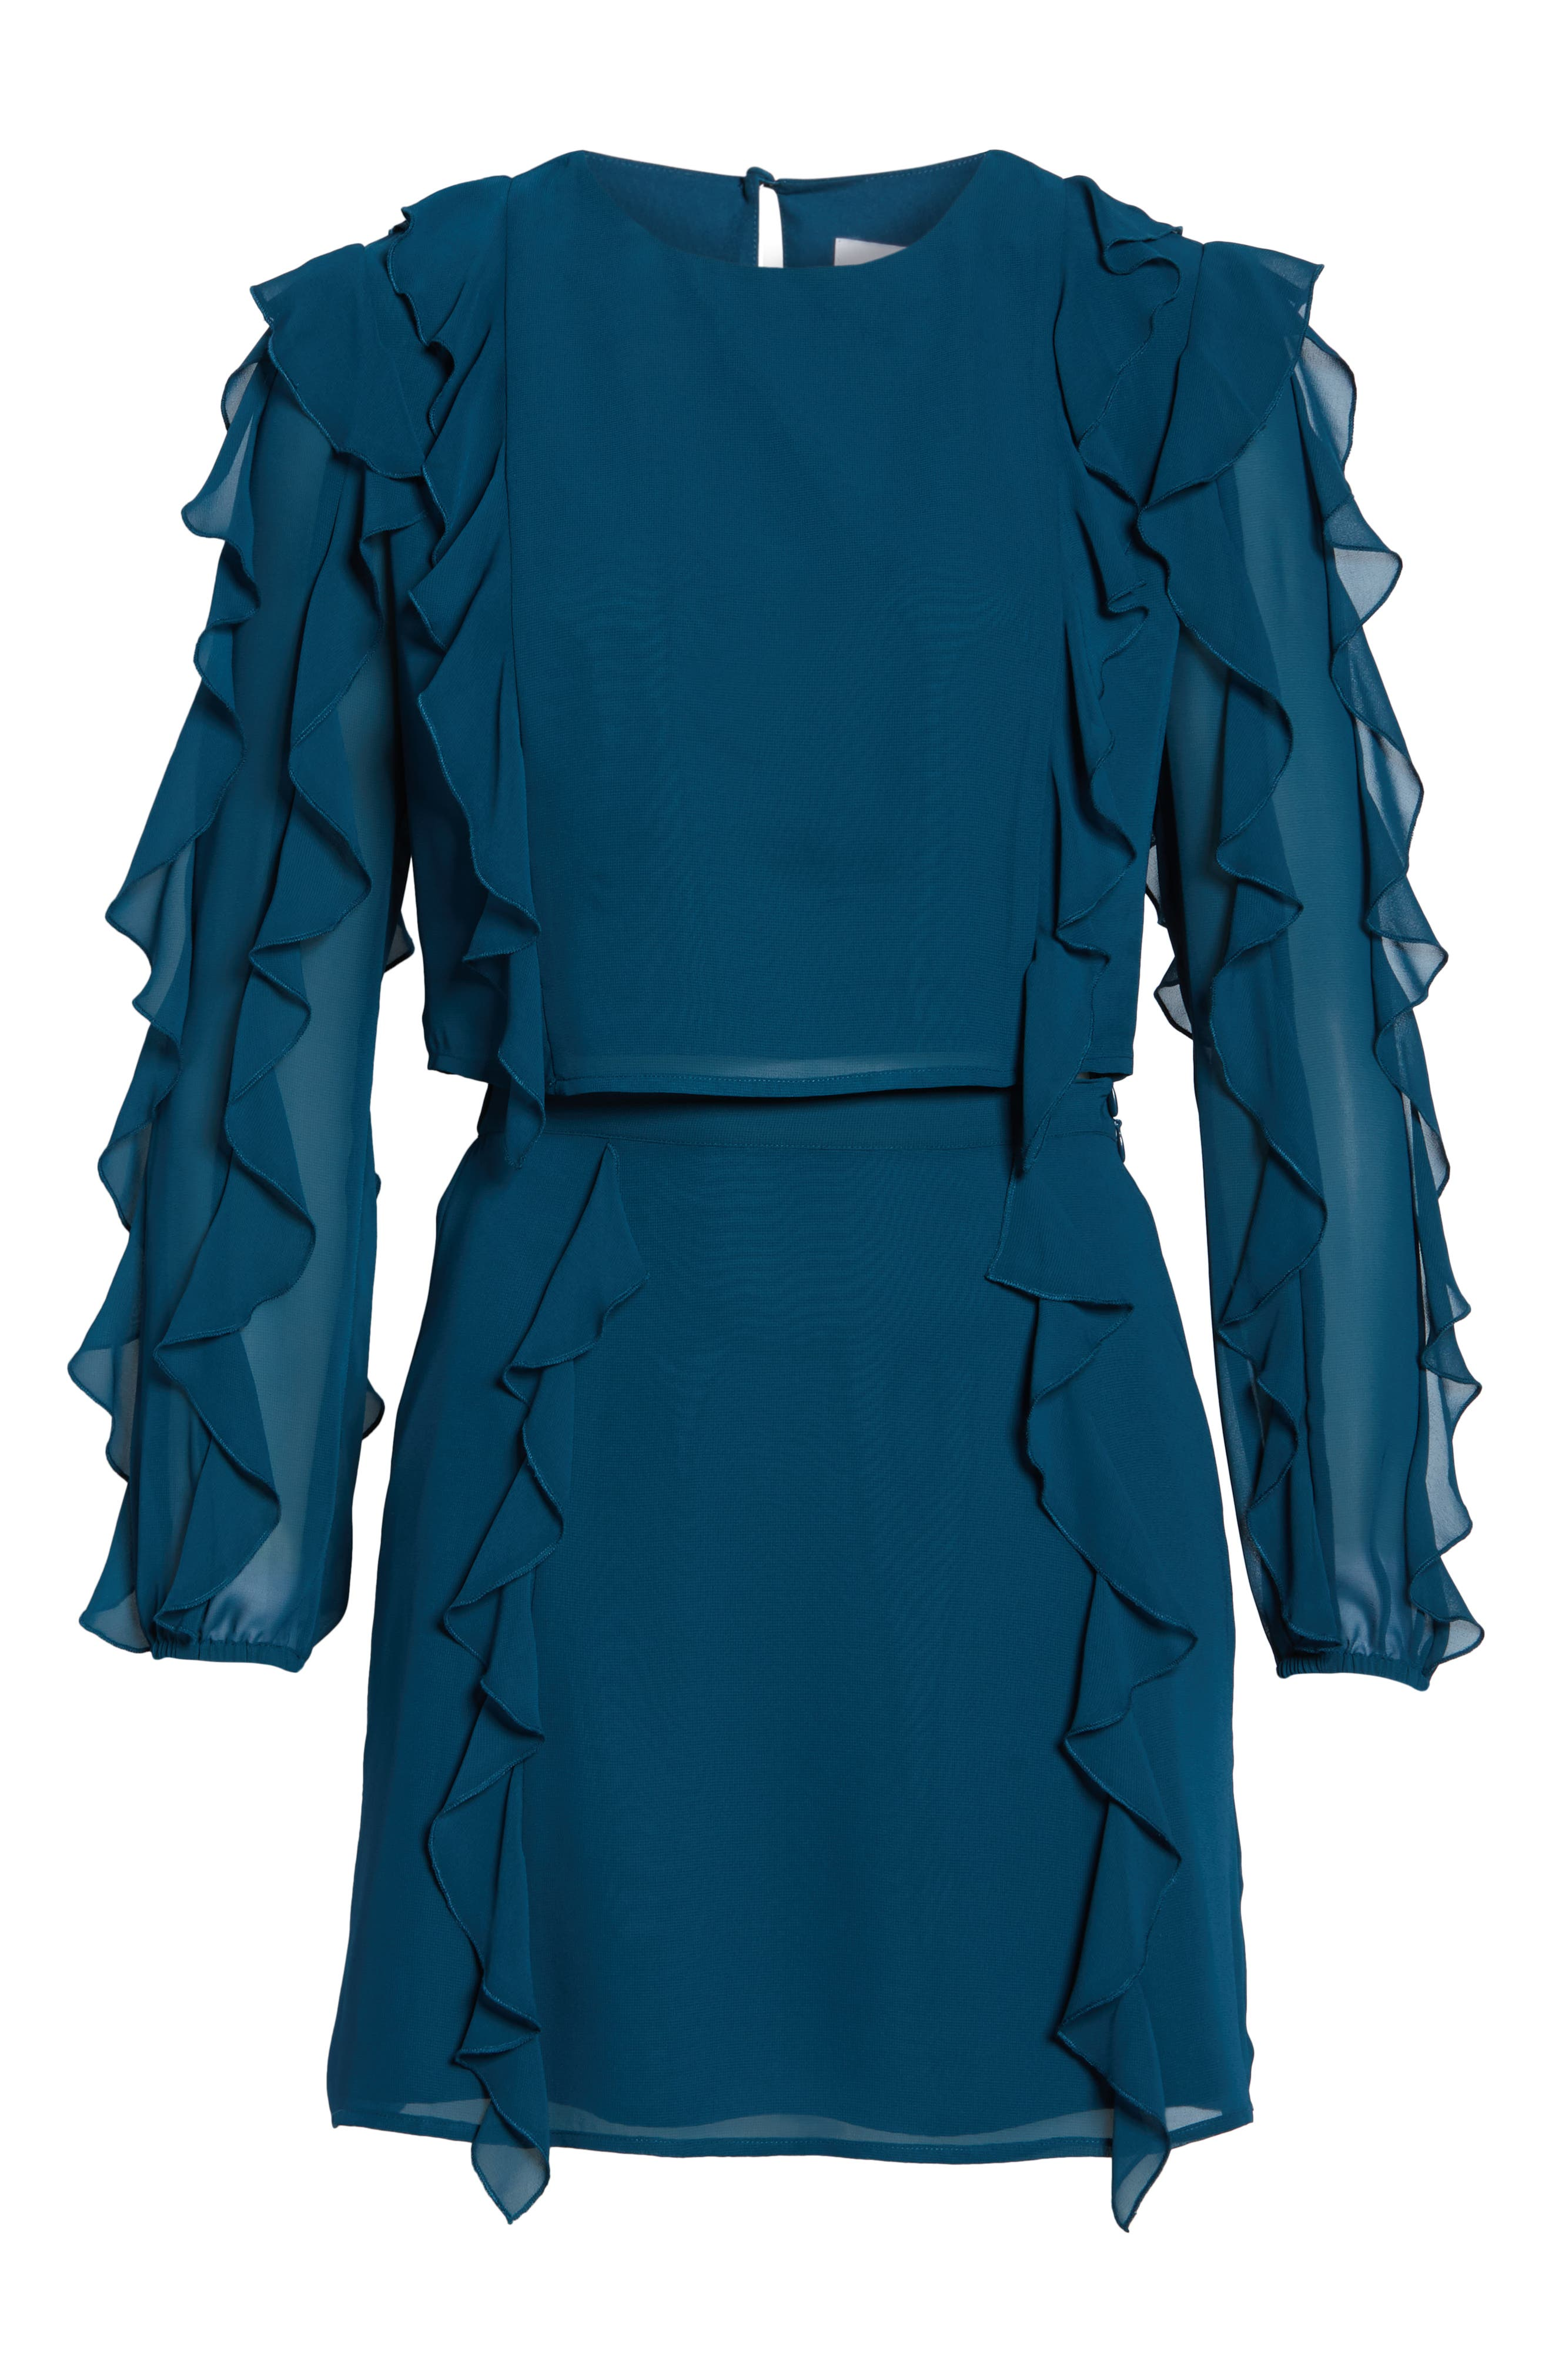 ALI & JAY, A Girl Can Dream Two-Piece Ruffle Trim Dress, Alternate thumbnail 6, color, TEAL